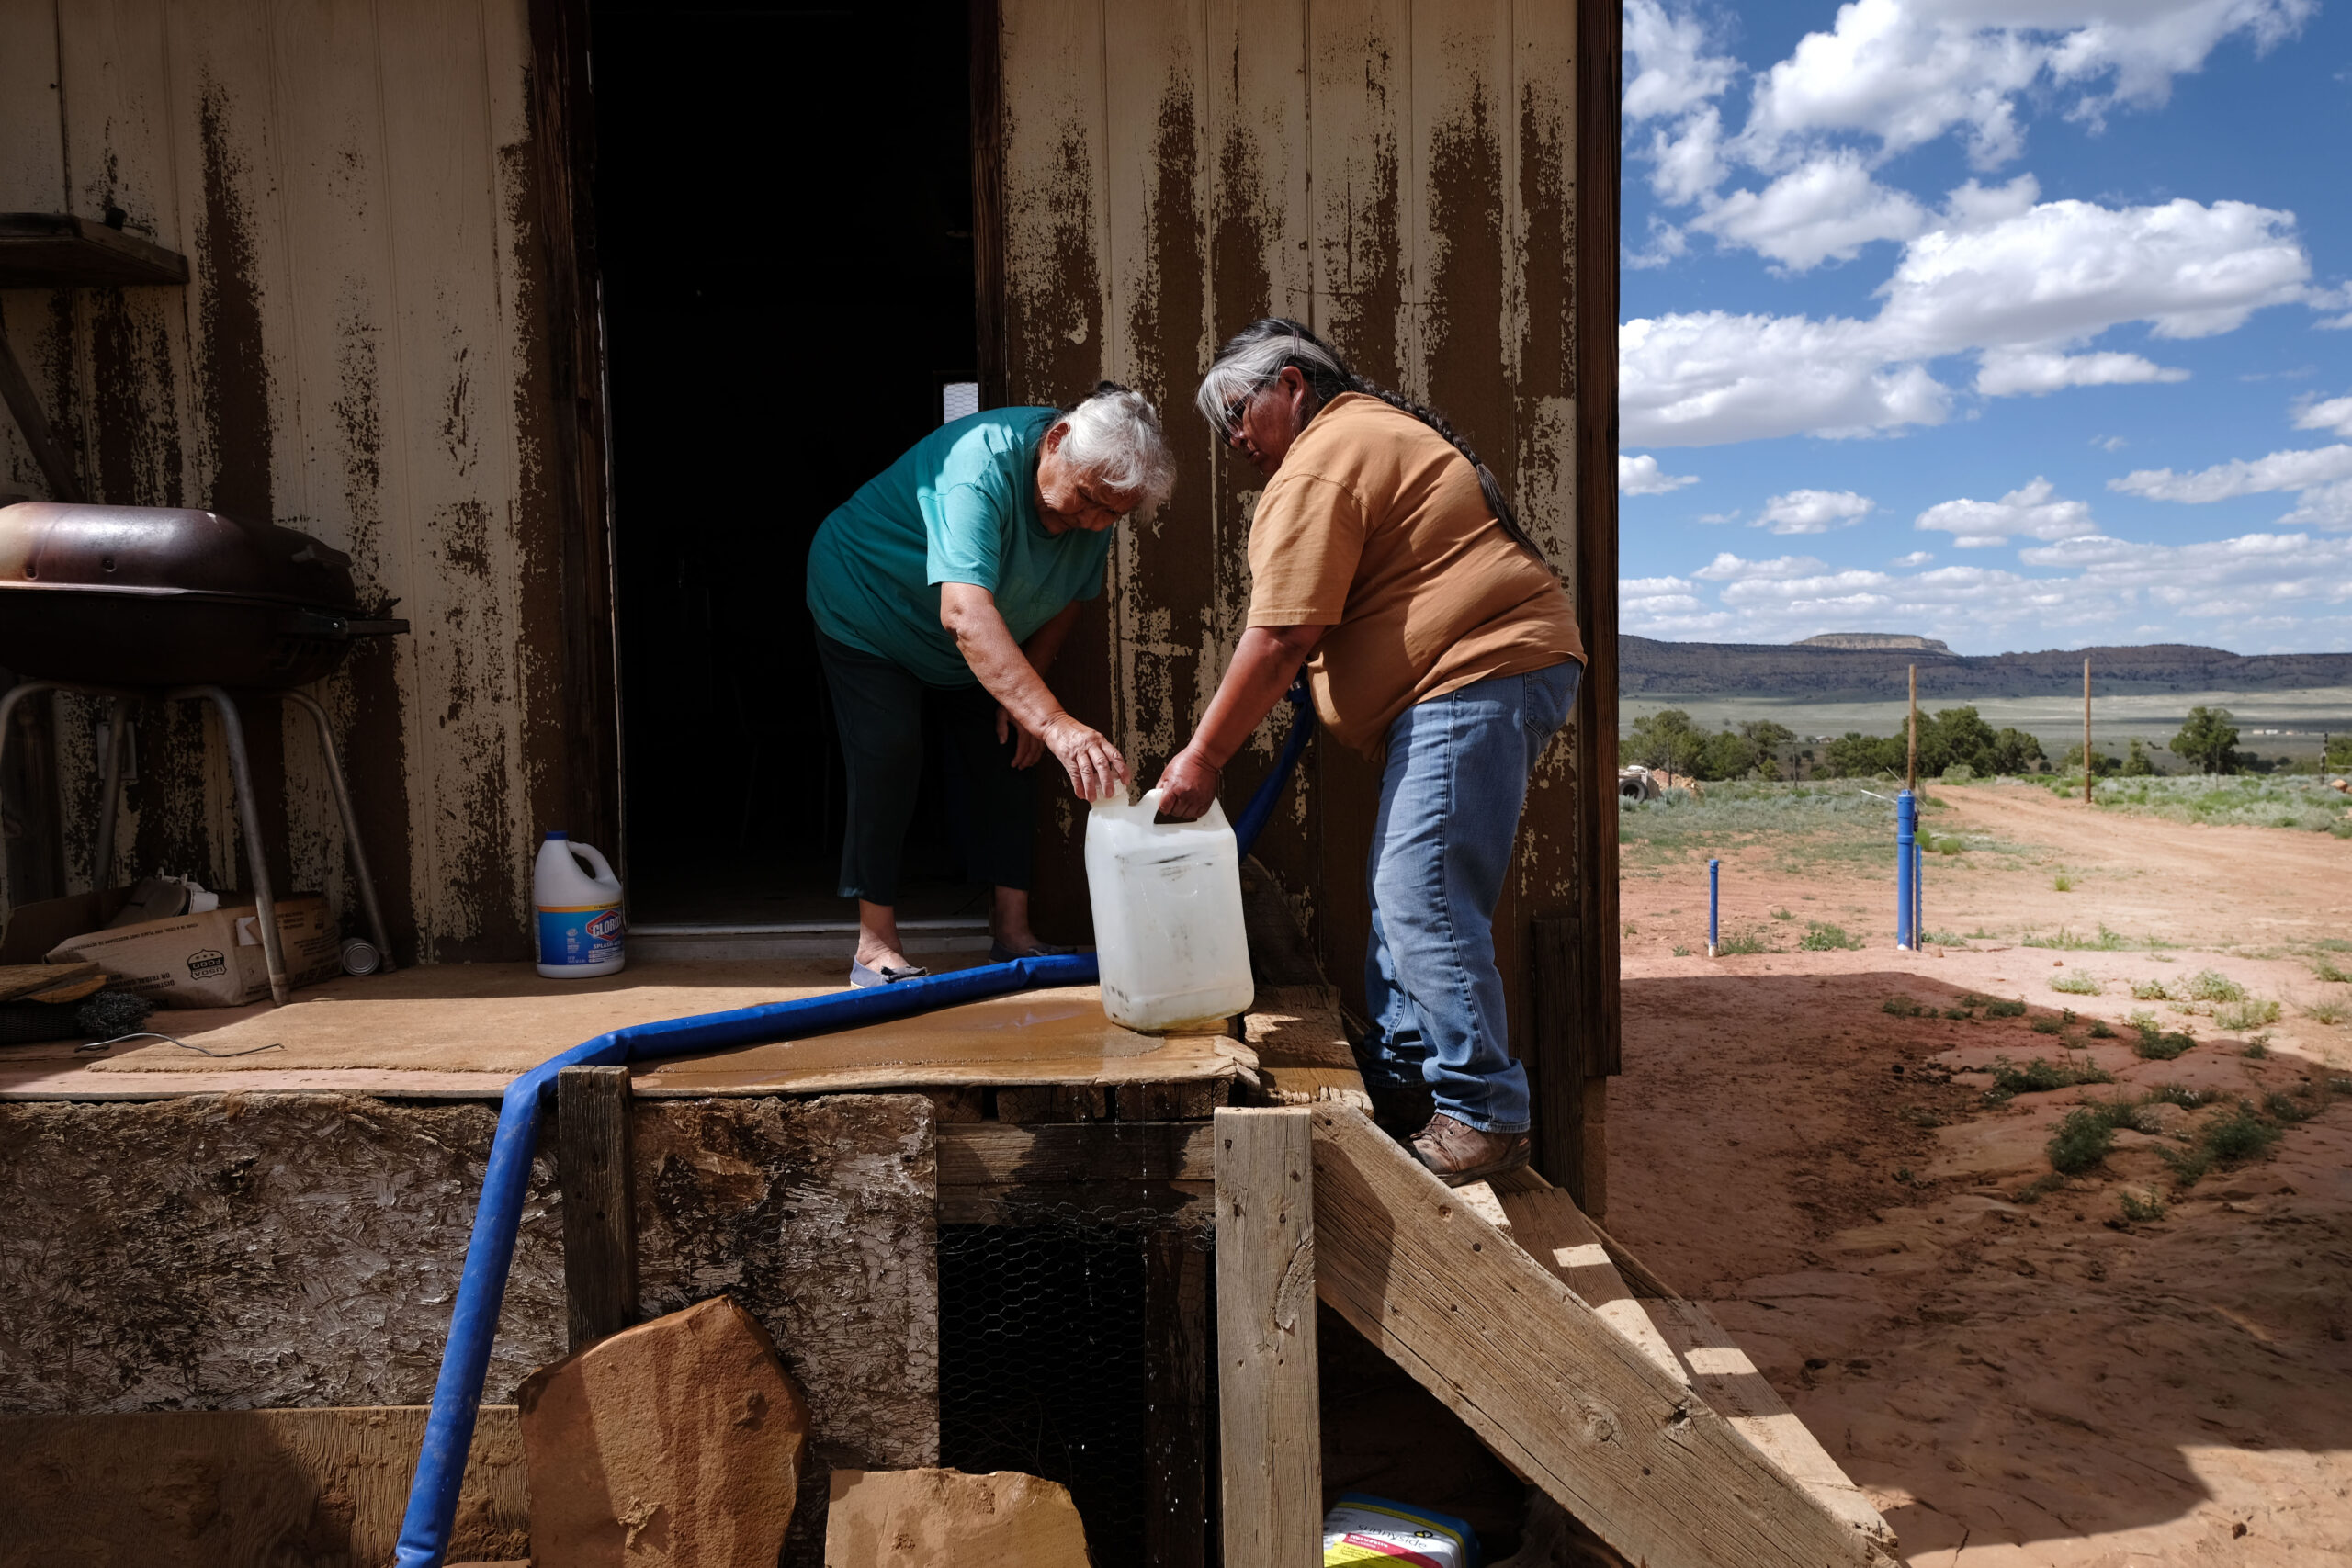 Two older Navajo women with a large plastic water bottle, outside a wooden clapboard house. There is a blue pipe running between them. The rural landscape stretches out into the distance.